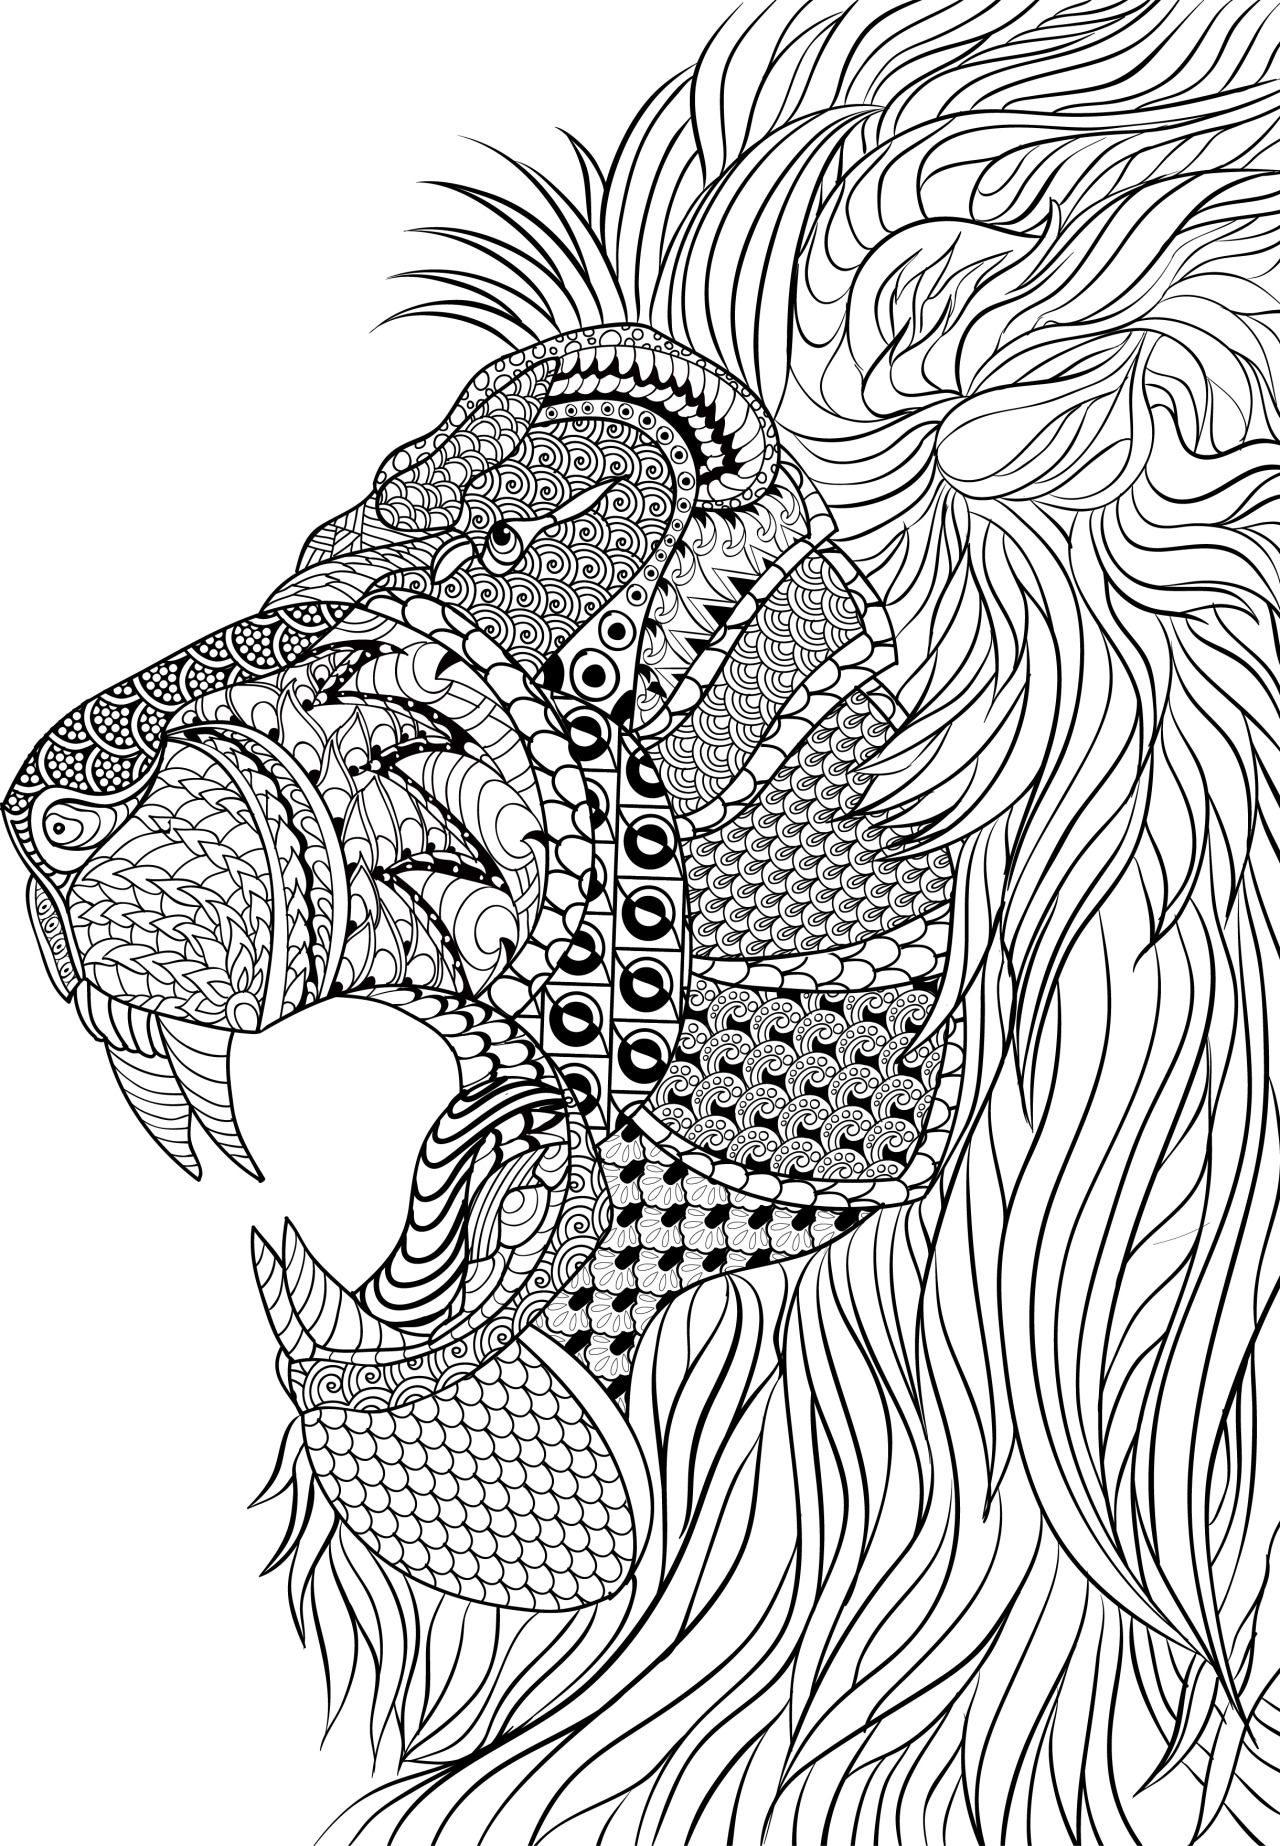 This image comes from our very own book titled Adult coloring book ...